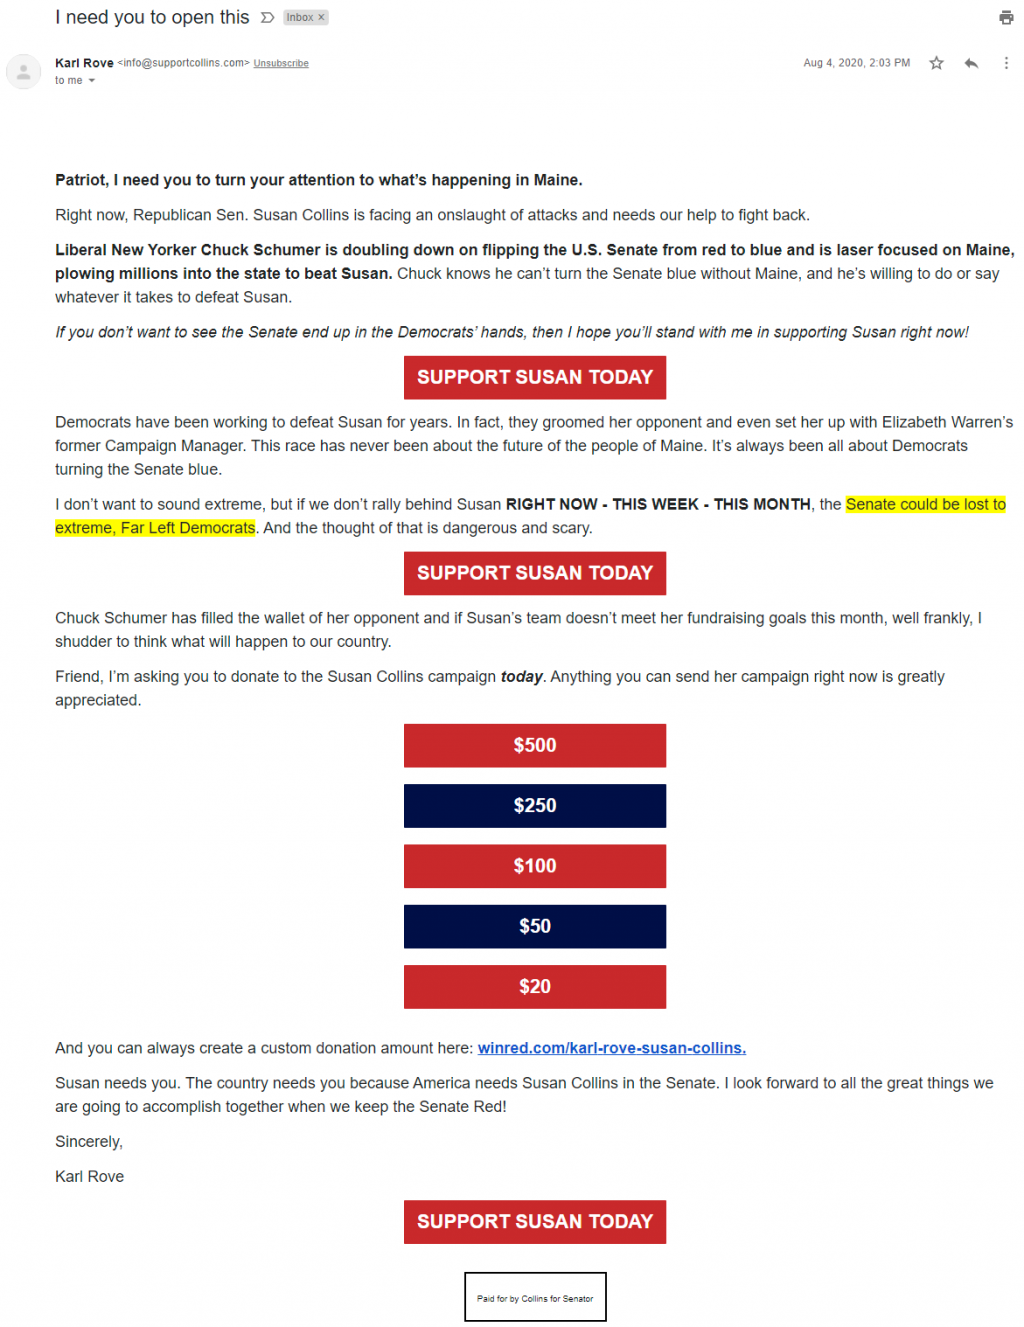 An image of Karl Rove's email for Susan Collins (August 4, 2020)